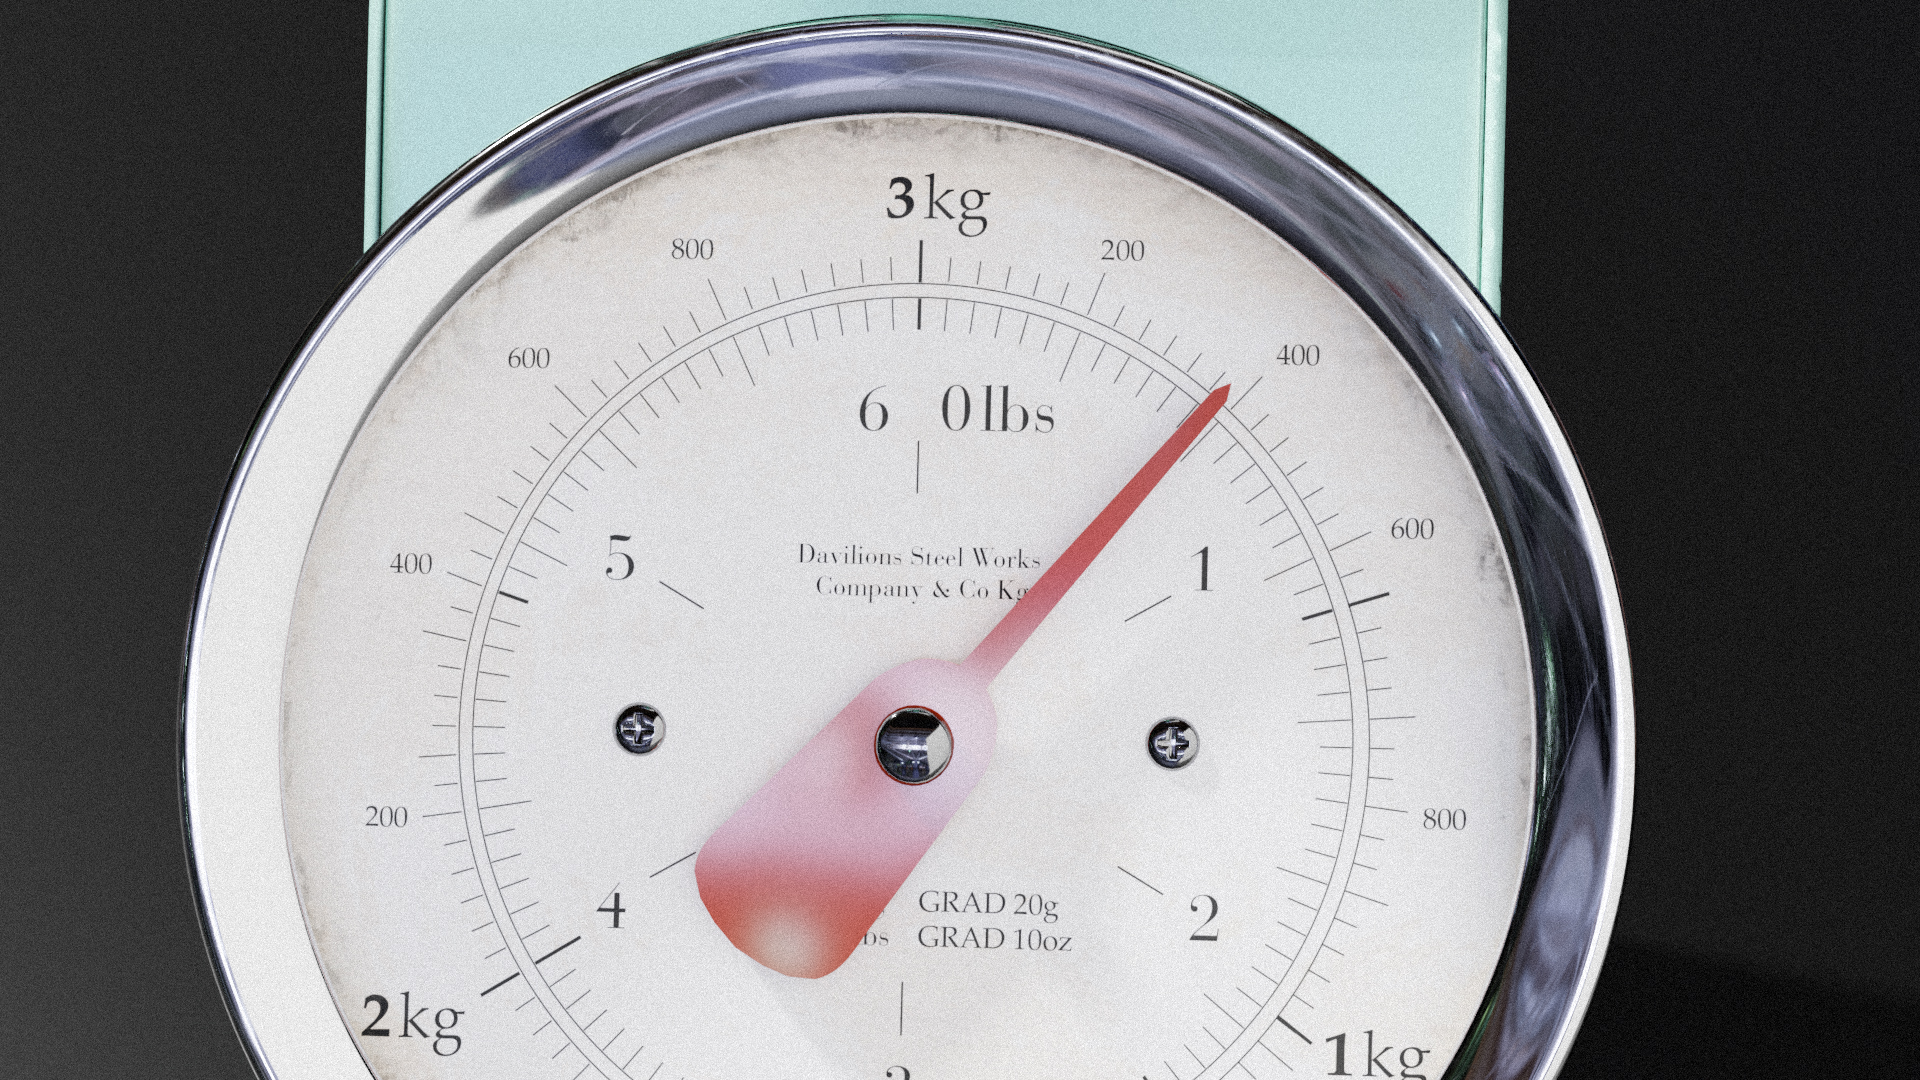 Old / Vintage Kitchen Scale (Scenefiller) by Davilion preview image 6